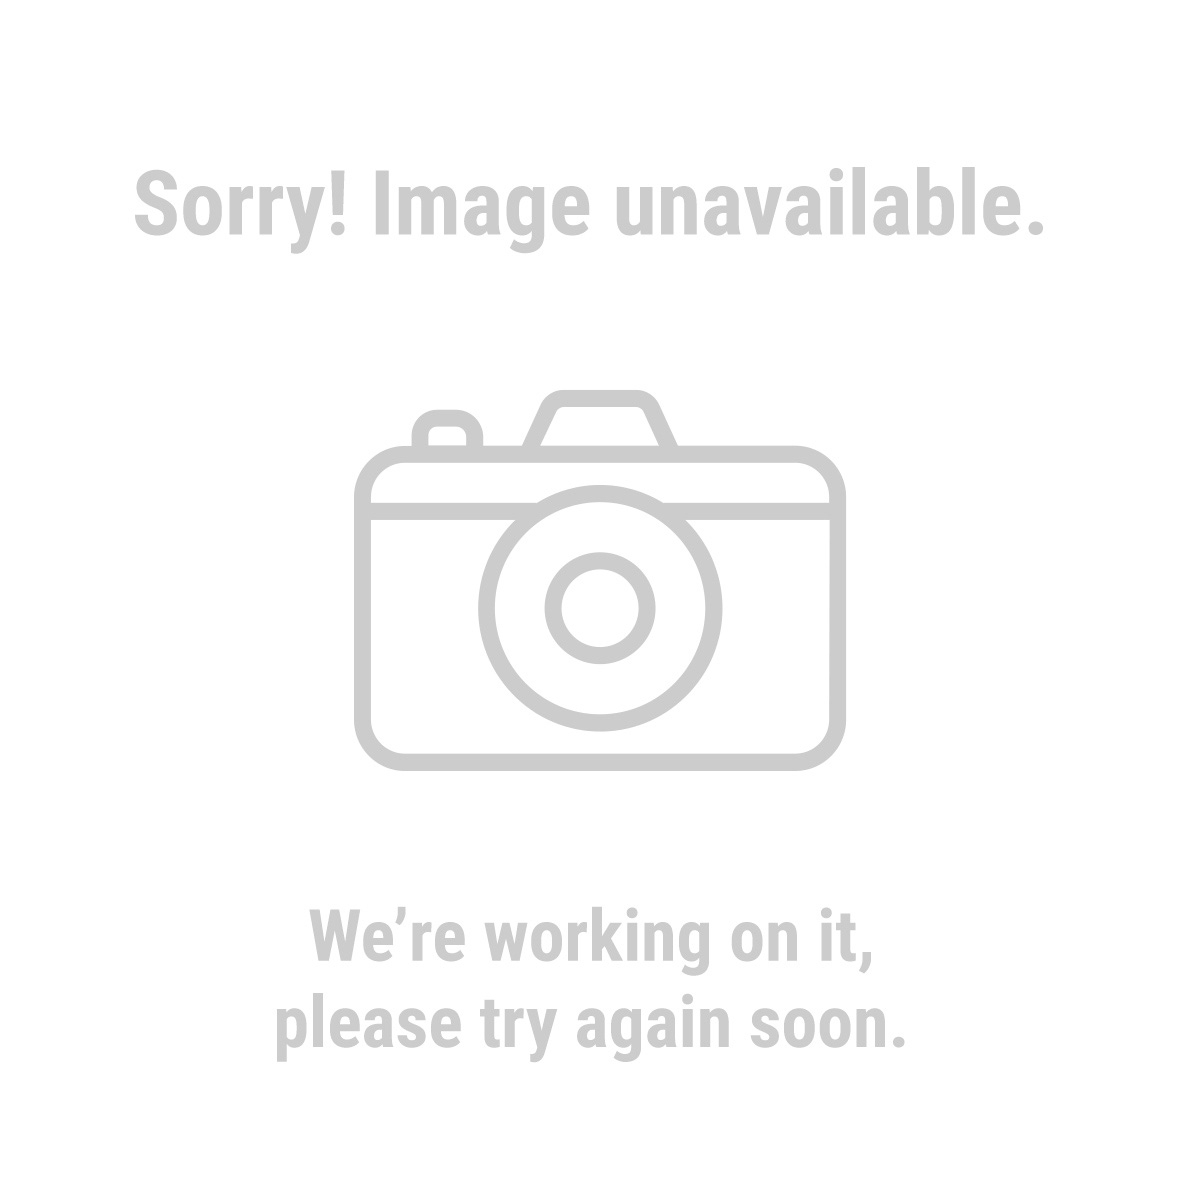 HFT 69678 4 Piece Microfiber Cleaning Cloths